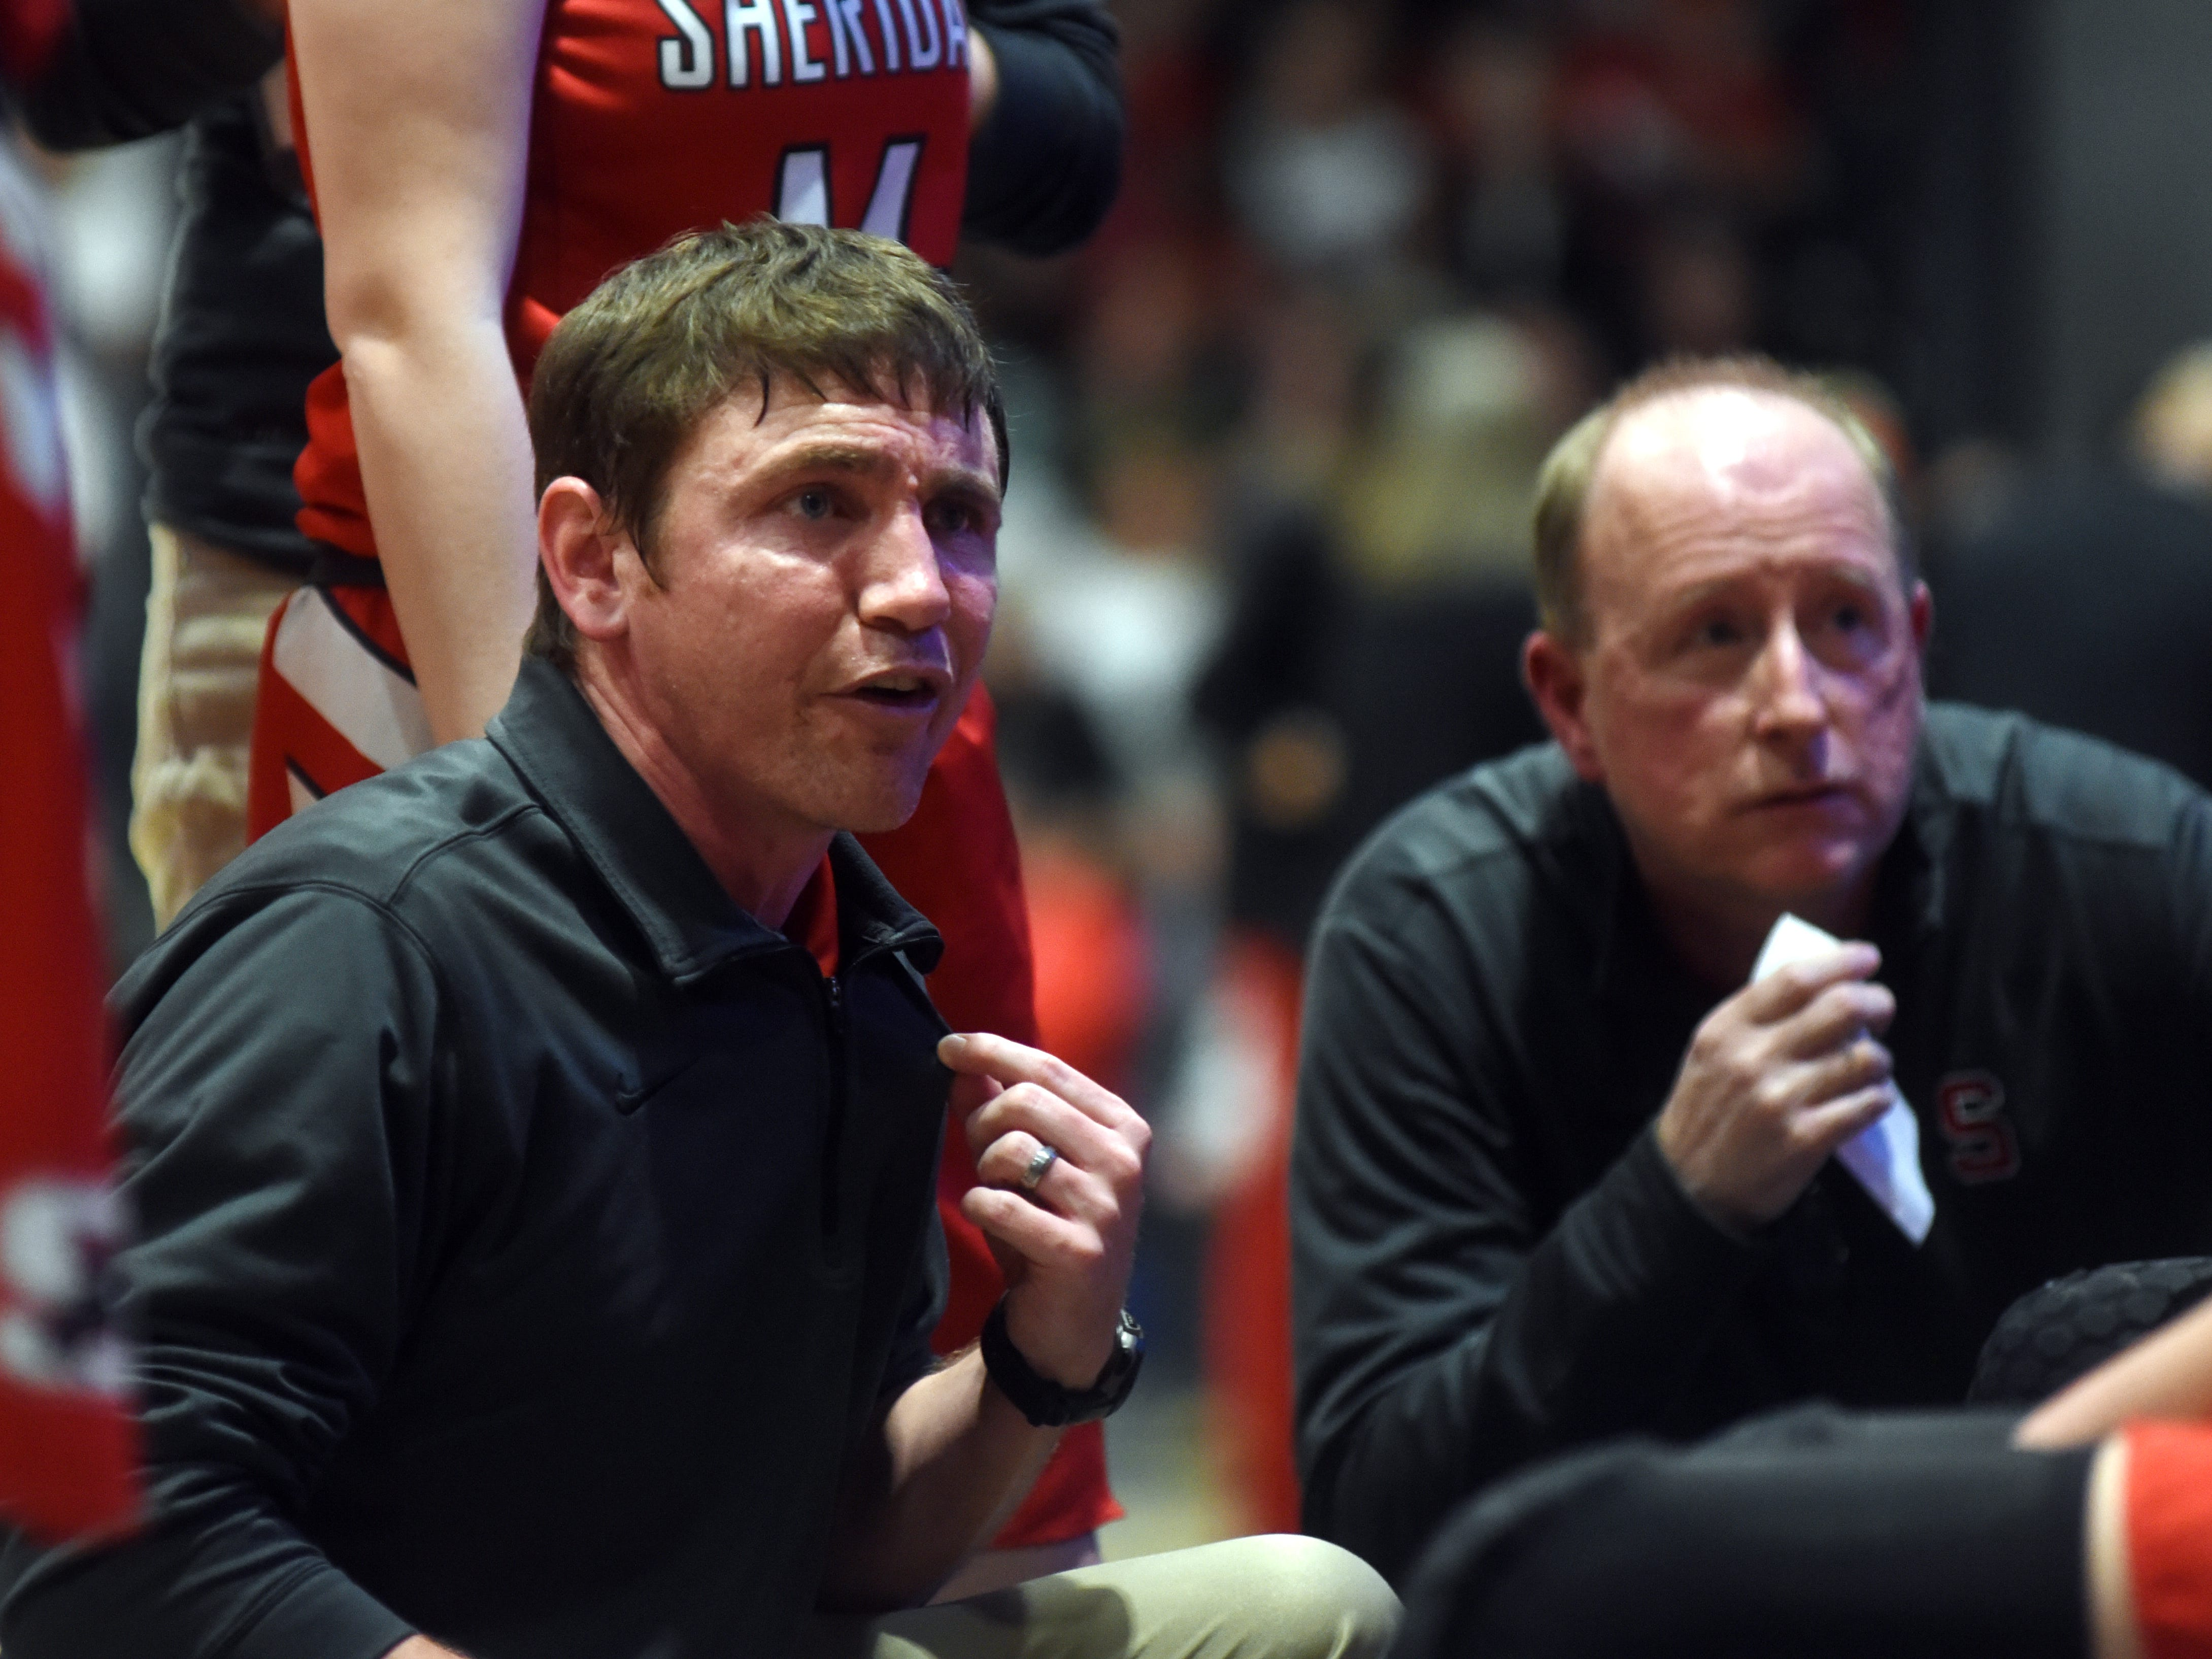 Sheridan coach J.D. Walters talks to his team during a timeout in the fourth quarter. Sheridan reached its first state tournament since 2004 with a 48-46 win against New Philadelphia on Friday night at Winland Memorial Gymnasium.